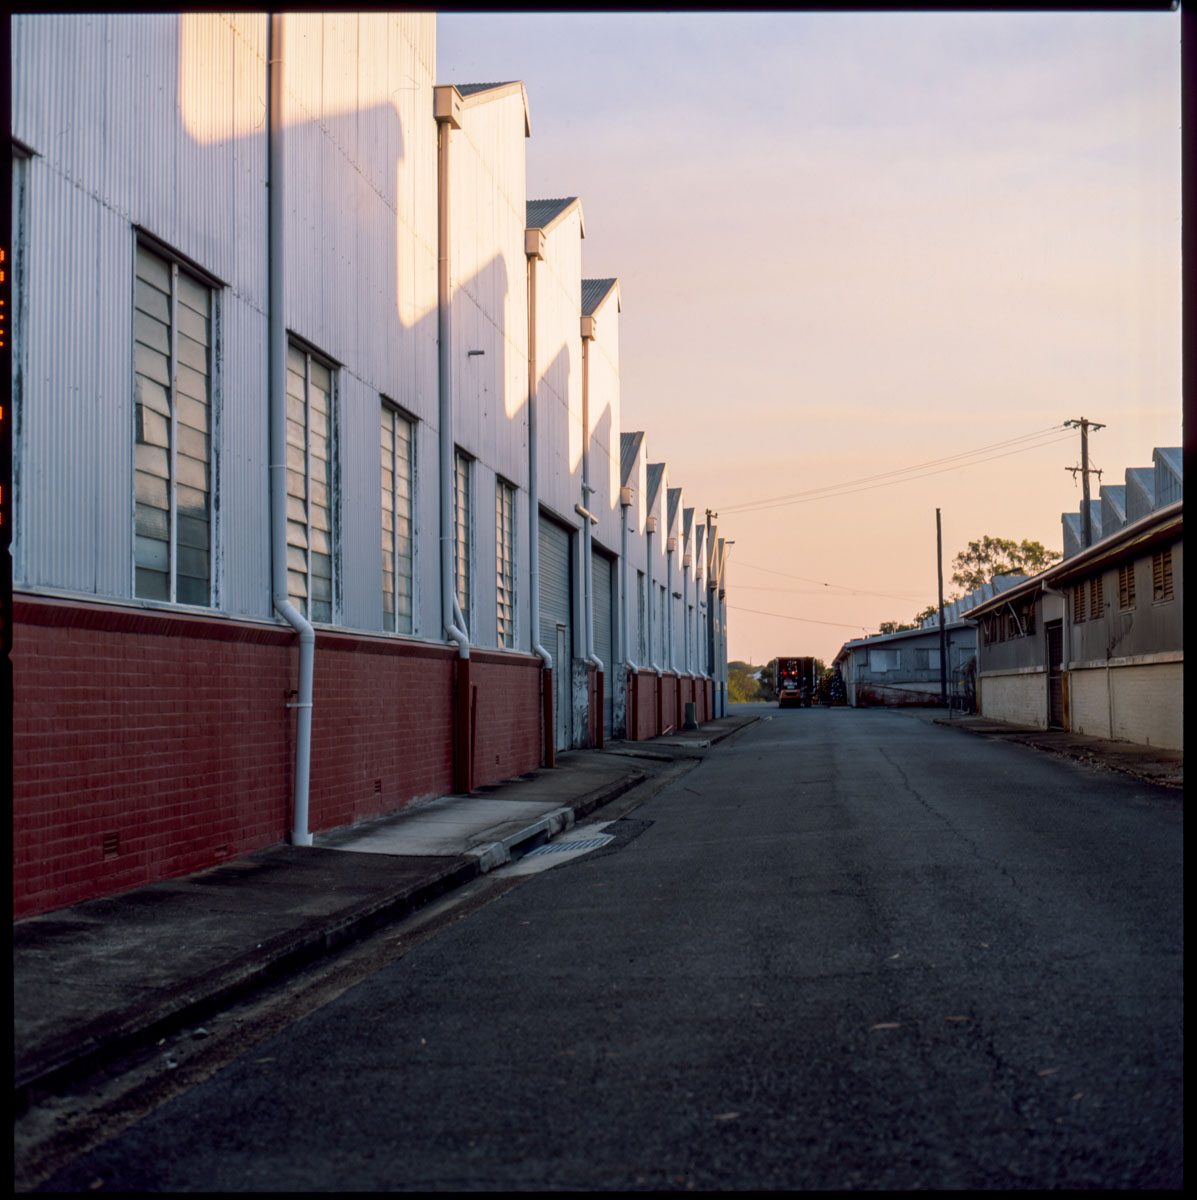 5 Frames... At an abandoned warehouse on Fujifilm Velvia 50 RVP (EI 50 / 120 format / Hasselblad 503CXi) - by Chris Dixon)